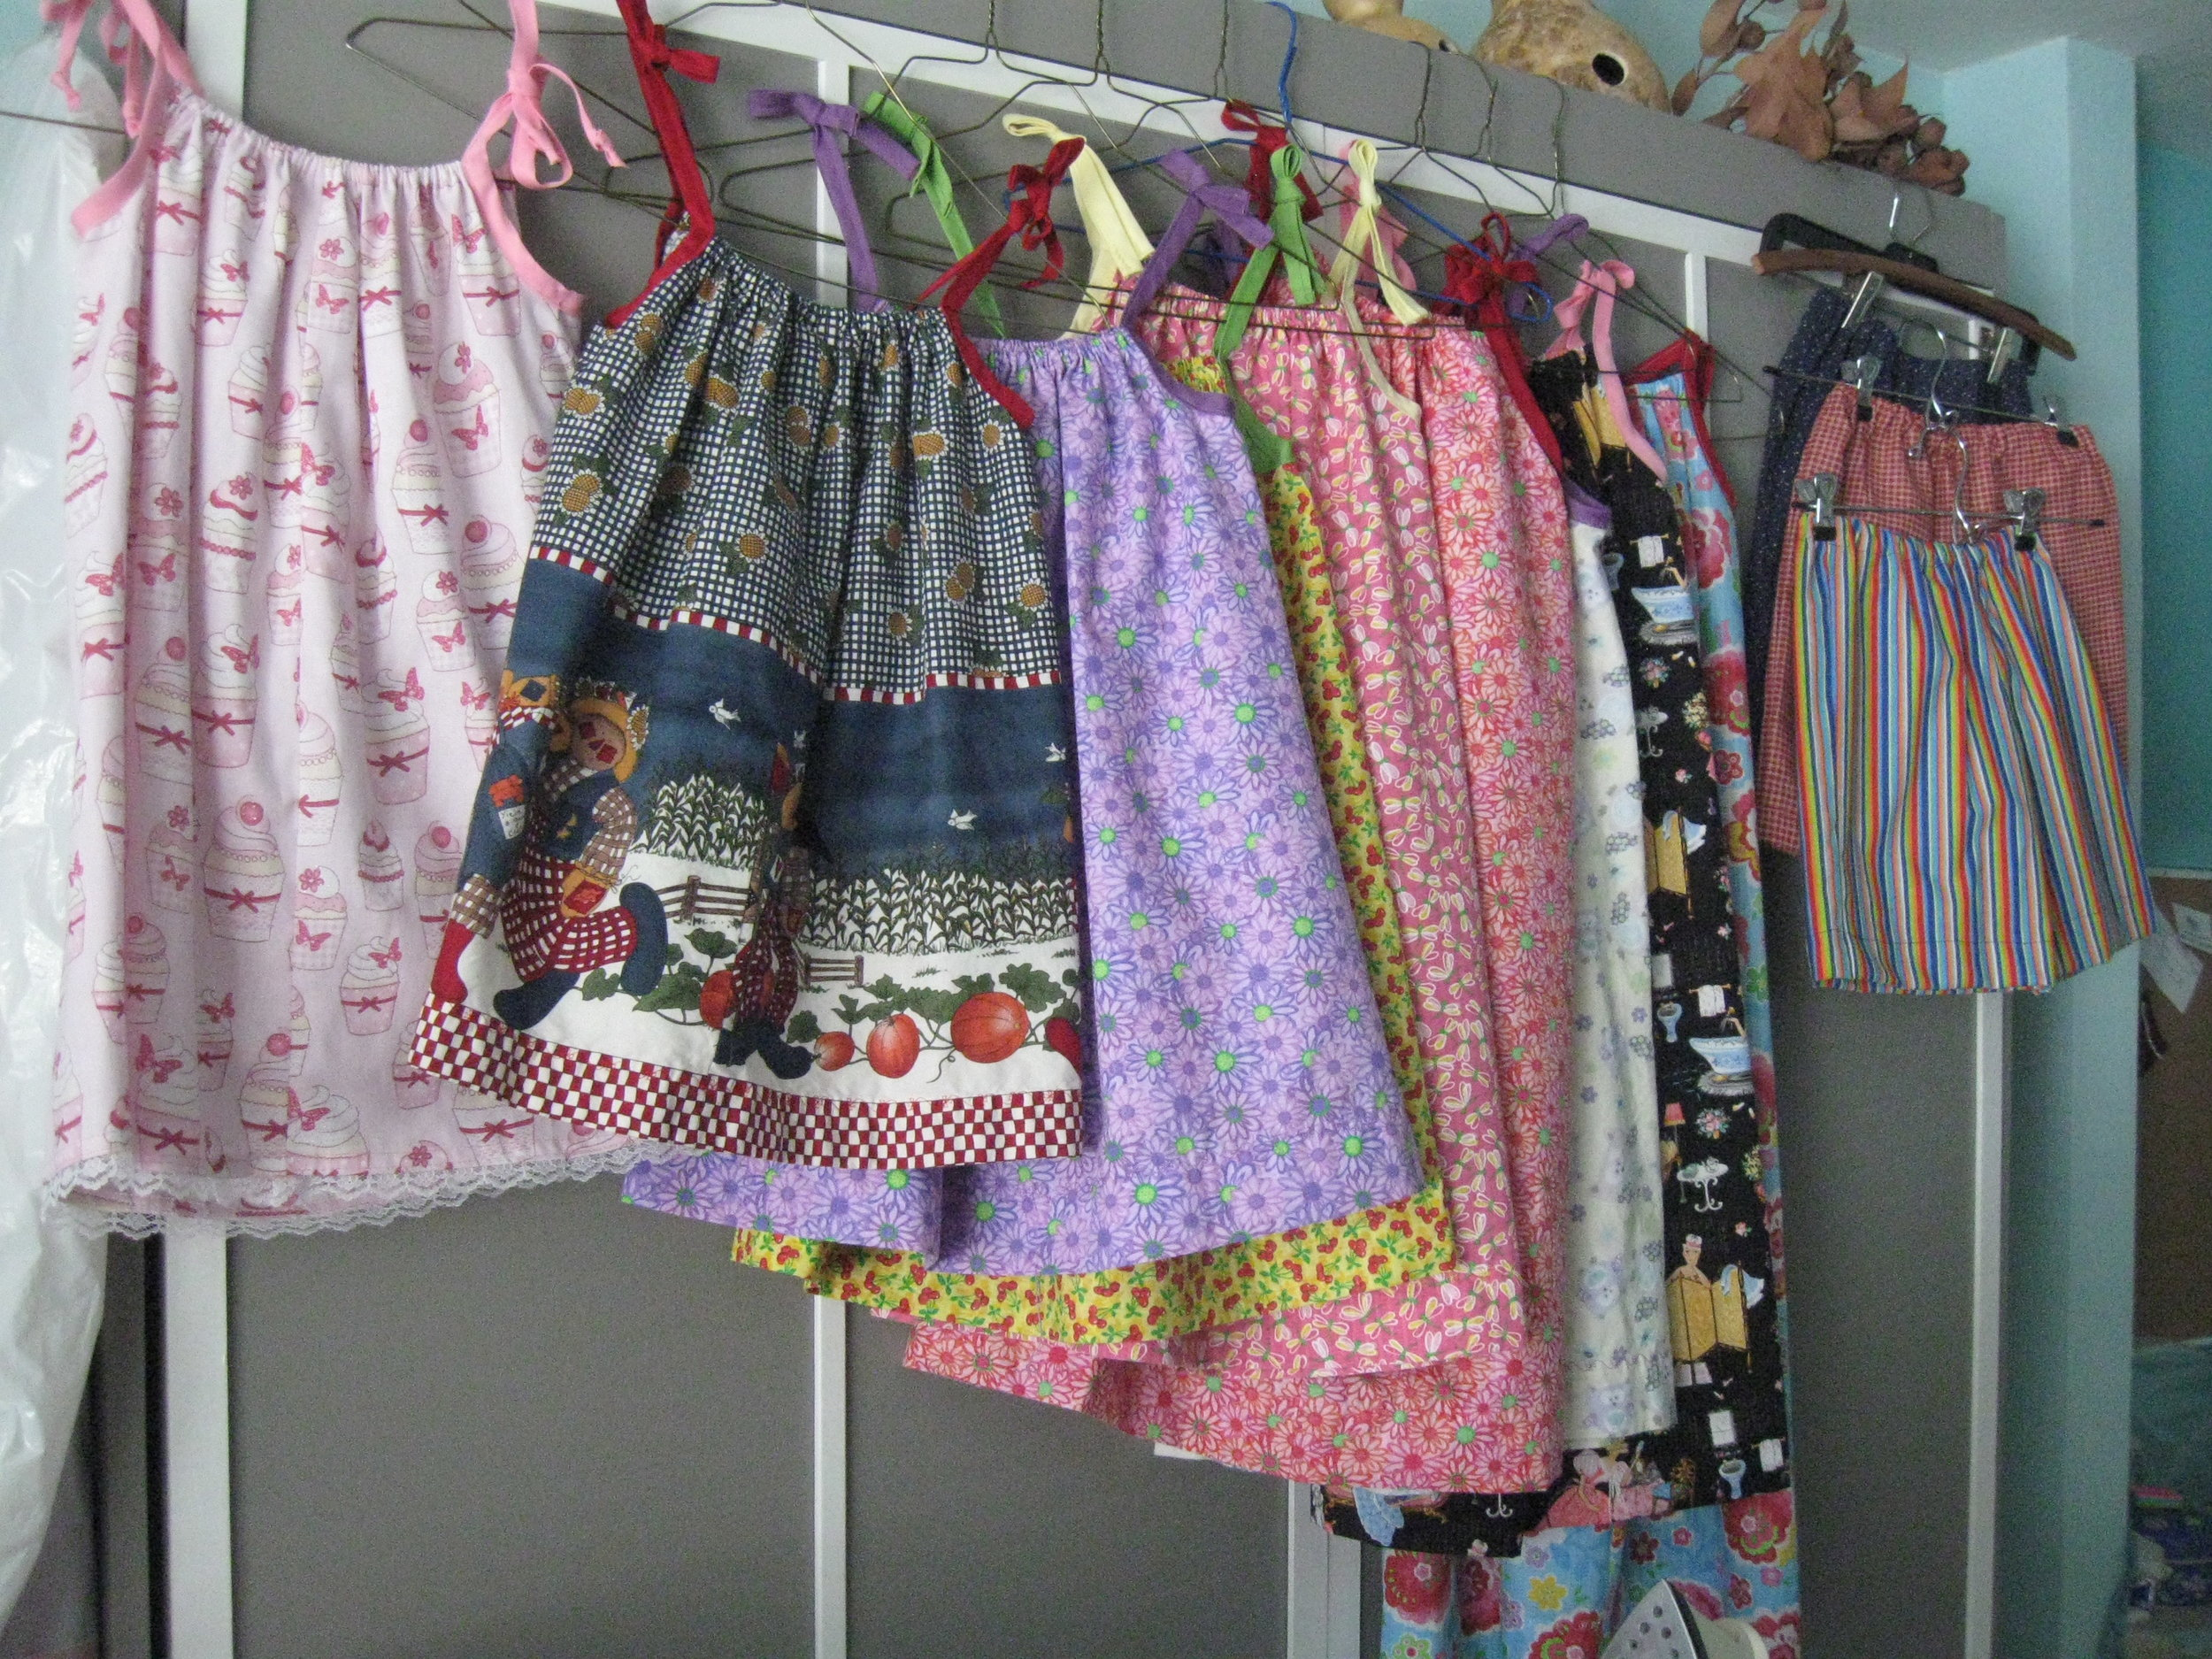 """Little Dresses and Little Shorts"" are made to send to children across the world who appreciate wearing new clothing made with love. It's a joy for us to make ""Little Dresses and Little Shorts"" for the children of the world!"